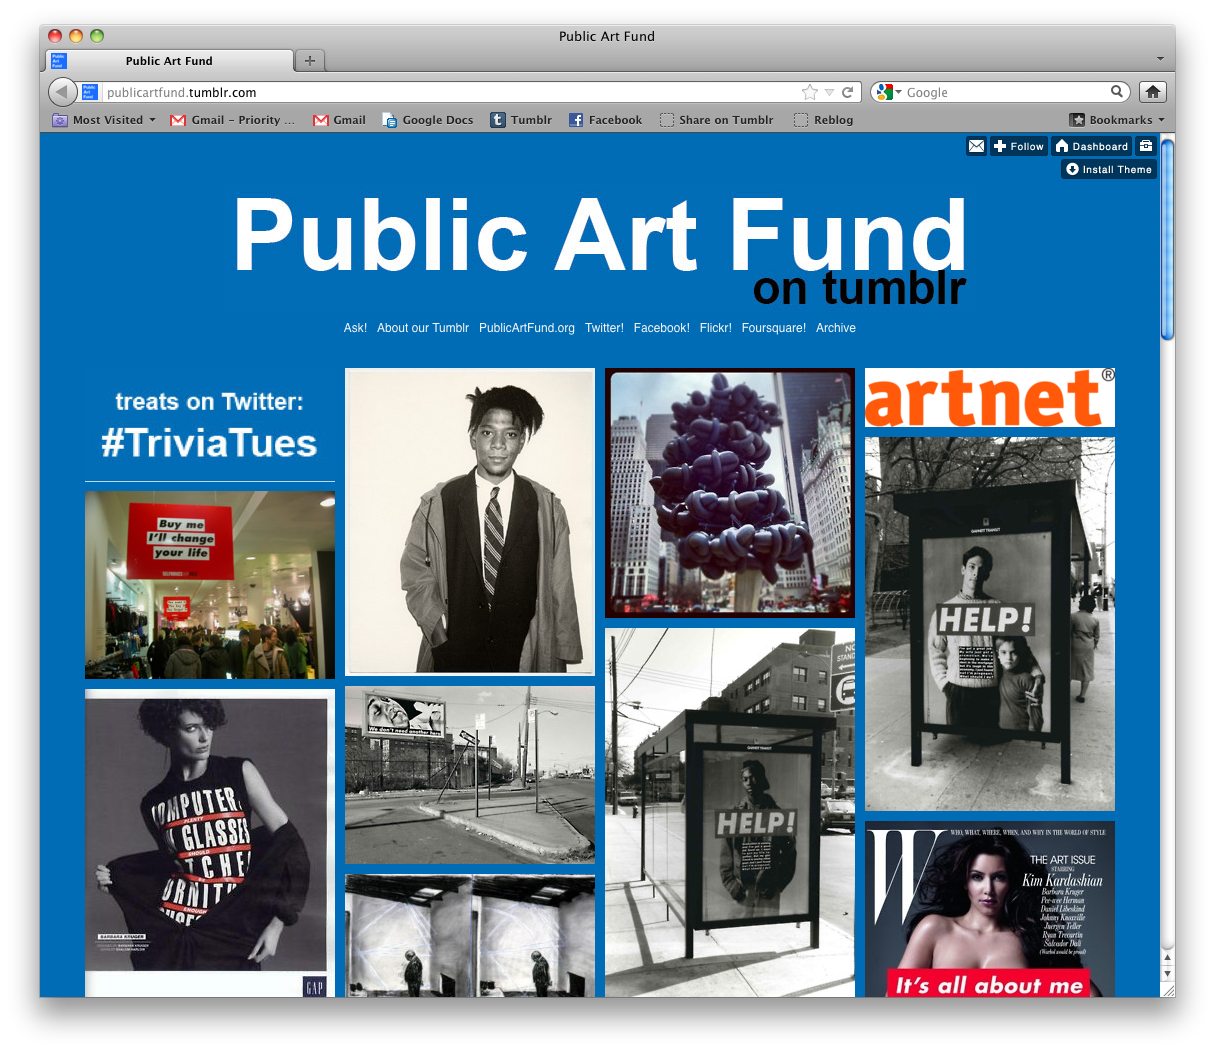 Public Art Fund uses Tumblr to host a conversation about public art at large, as well as document the interactions of their own pieces around New York City.